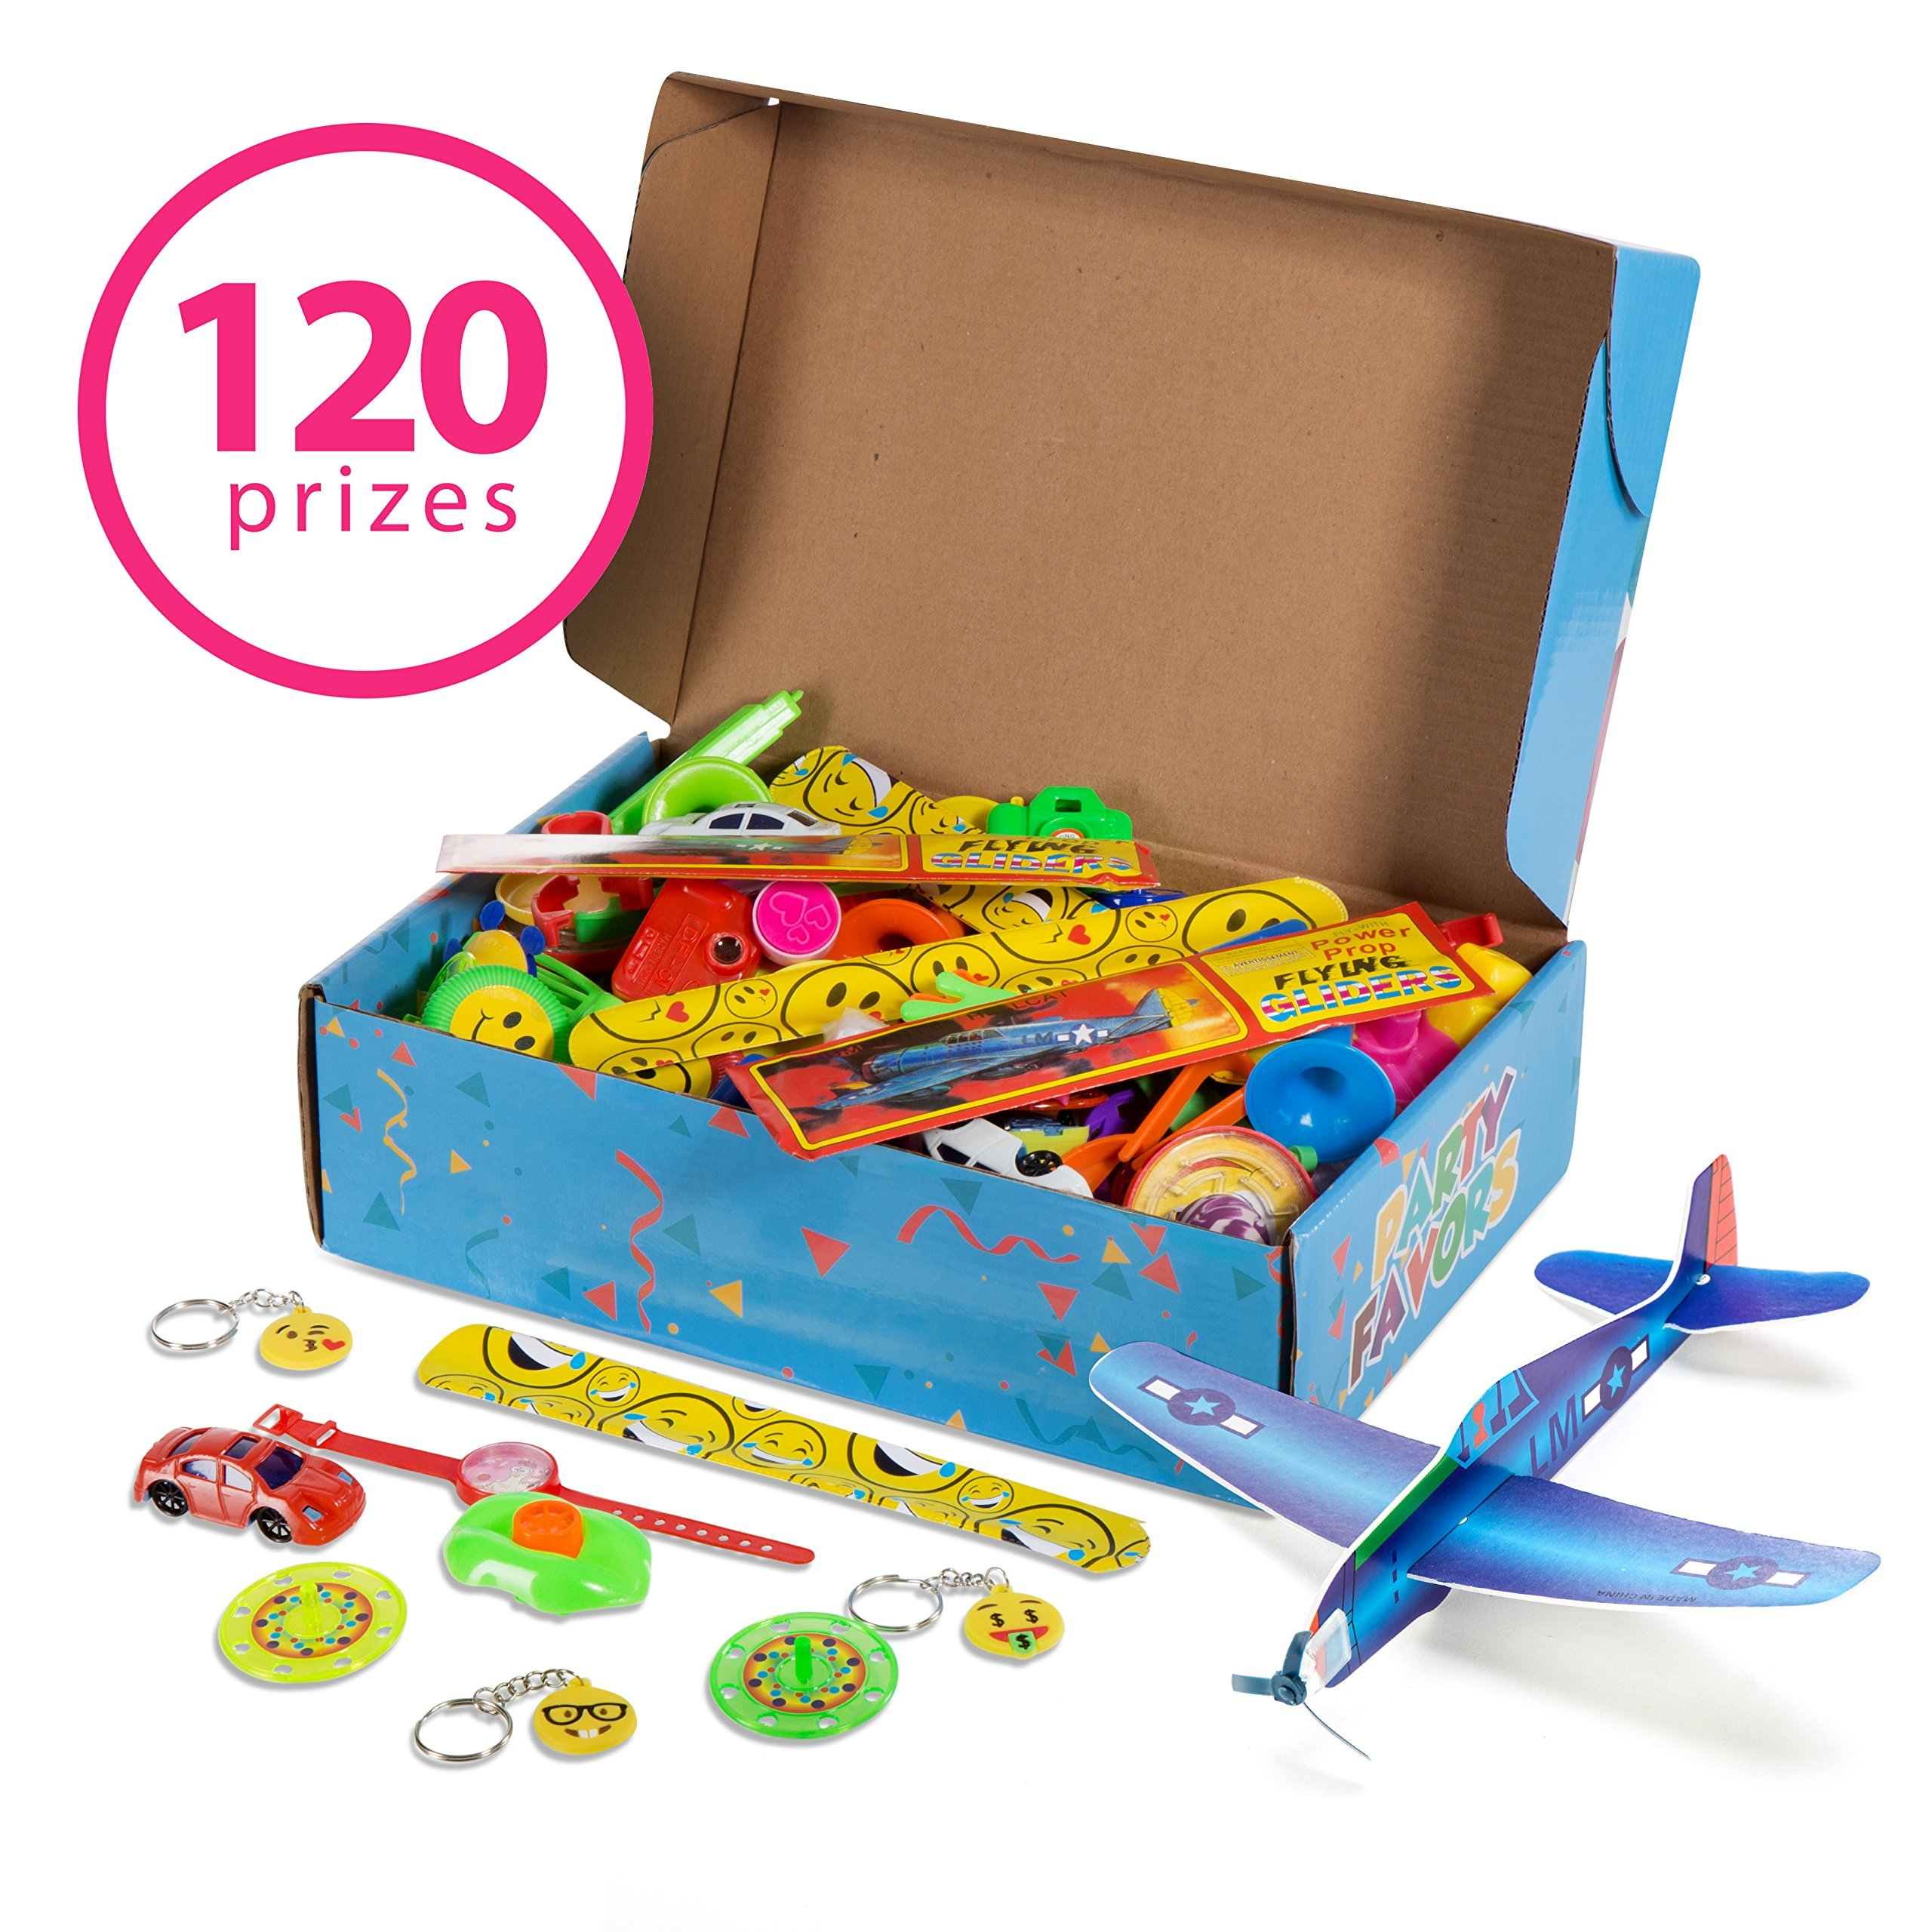 Cheap prizes for kids games